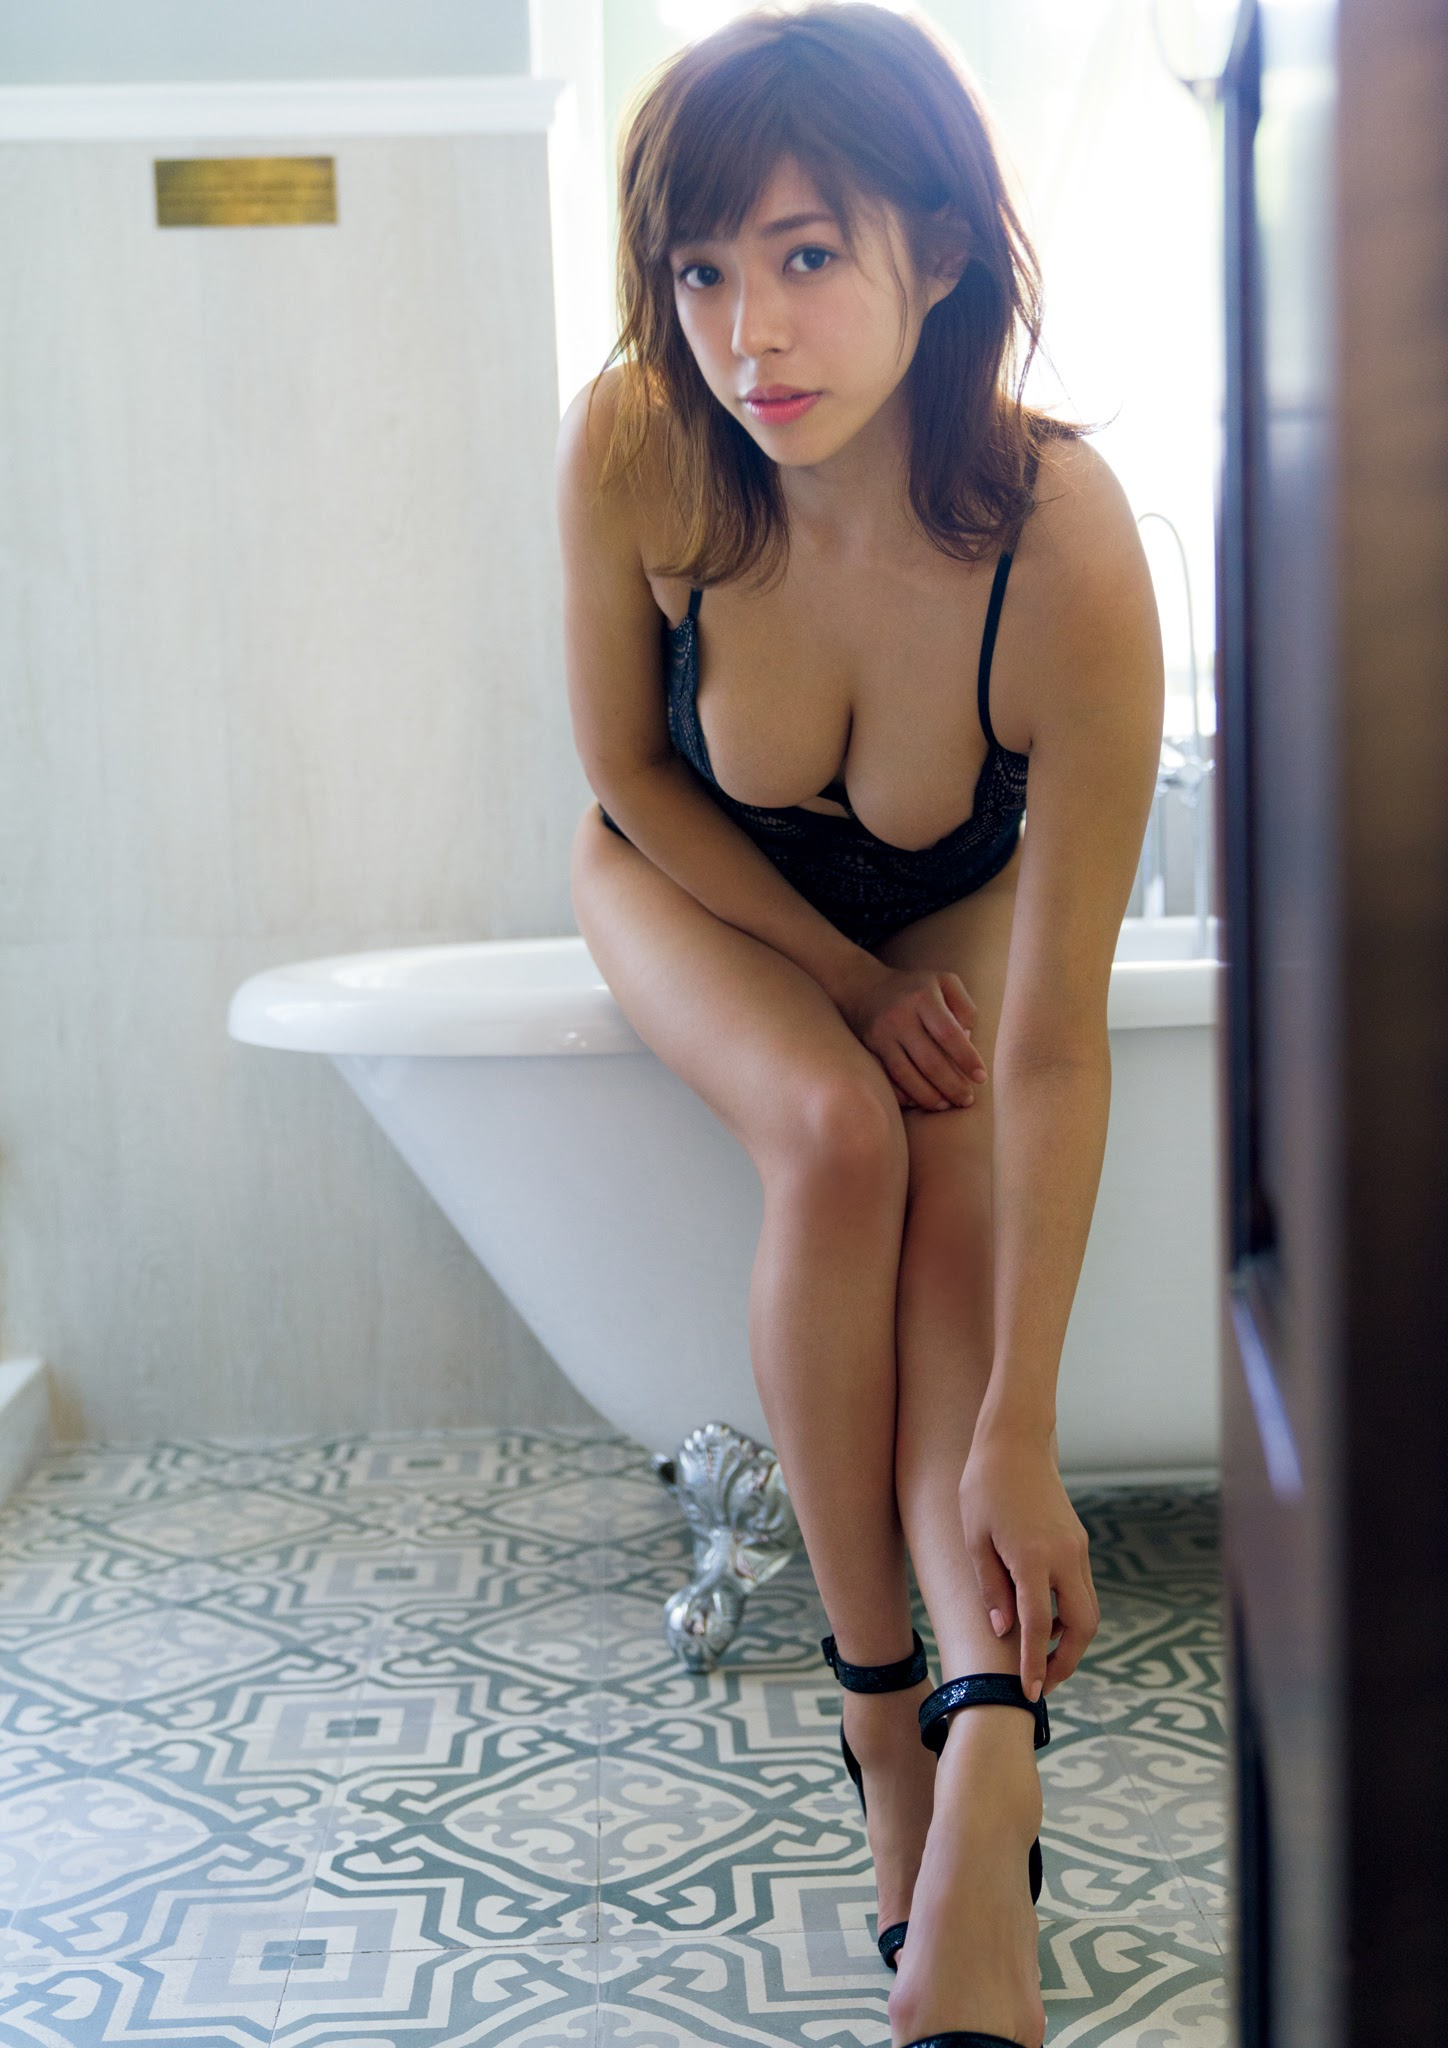 Super body of H cup Minami Wachi 2020 that exposes body and mind in tropical Thailand067